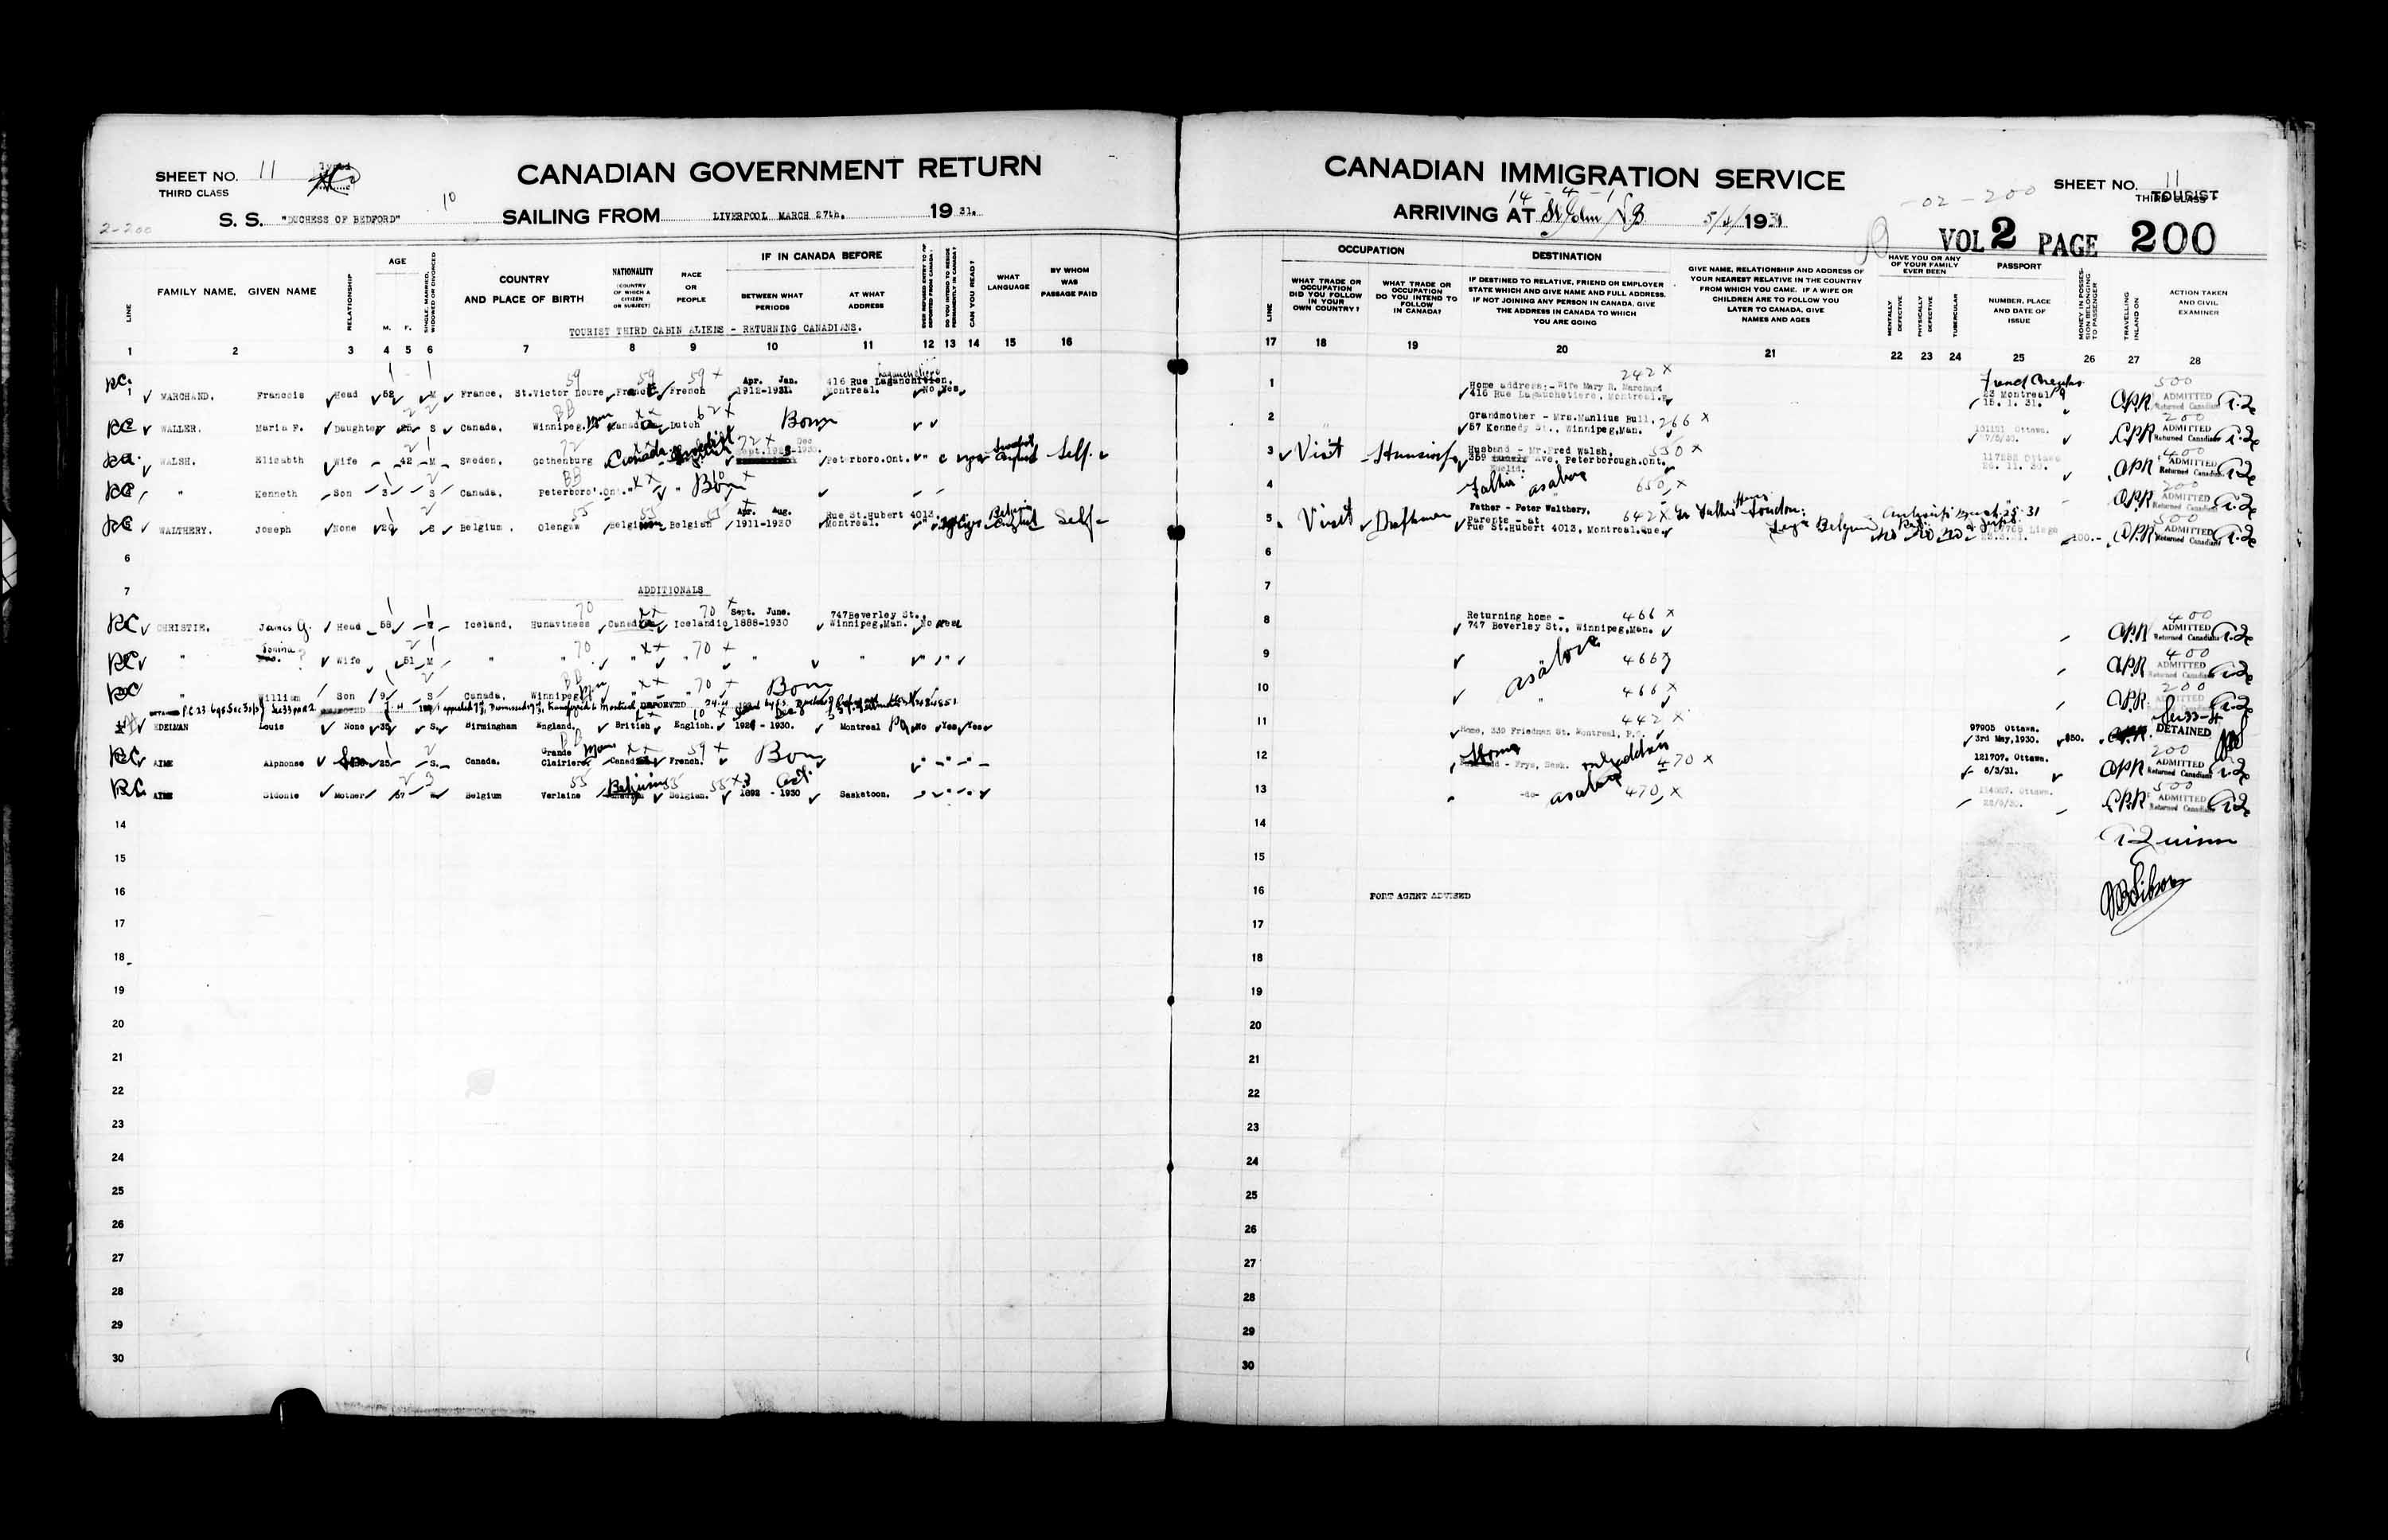 Title: Passenger Lists: Saint John (1925-1935) - Mikan Number: 134836 - Microform: t-14858